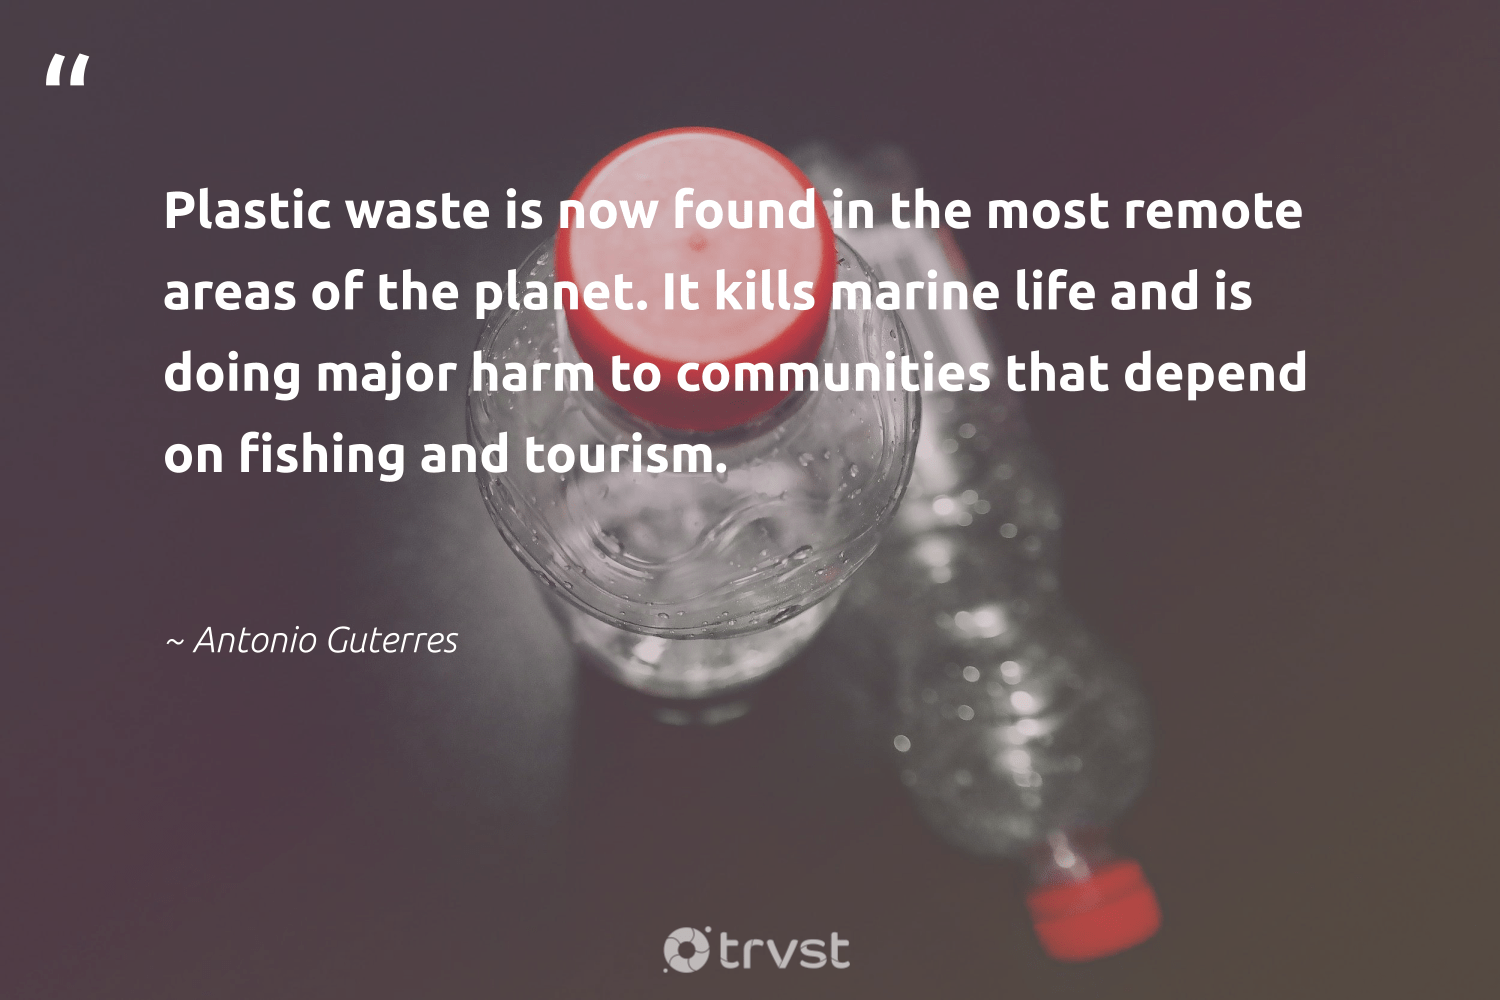 """""""Plastic waste is now found in the most remote areas of the planet. It kills marine life and is doing major harm to communities that depend on fishing and tourism.""""  - Antonio Guterres #trvst #quotes #waste #plasticwaste #plastic #fishing #planet #marinelife #marine #communities #underwater #plasticfree"""